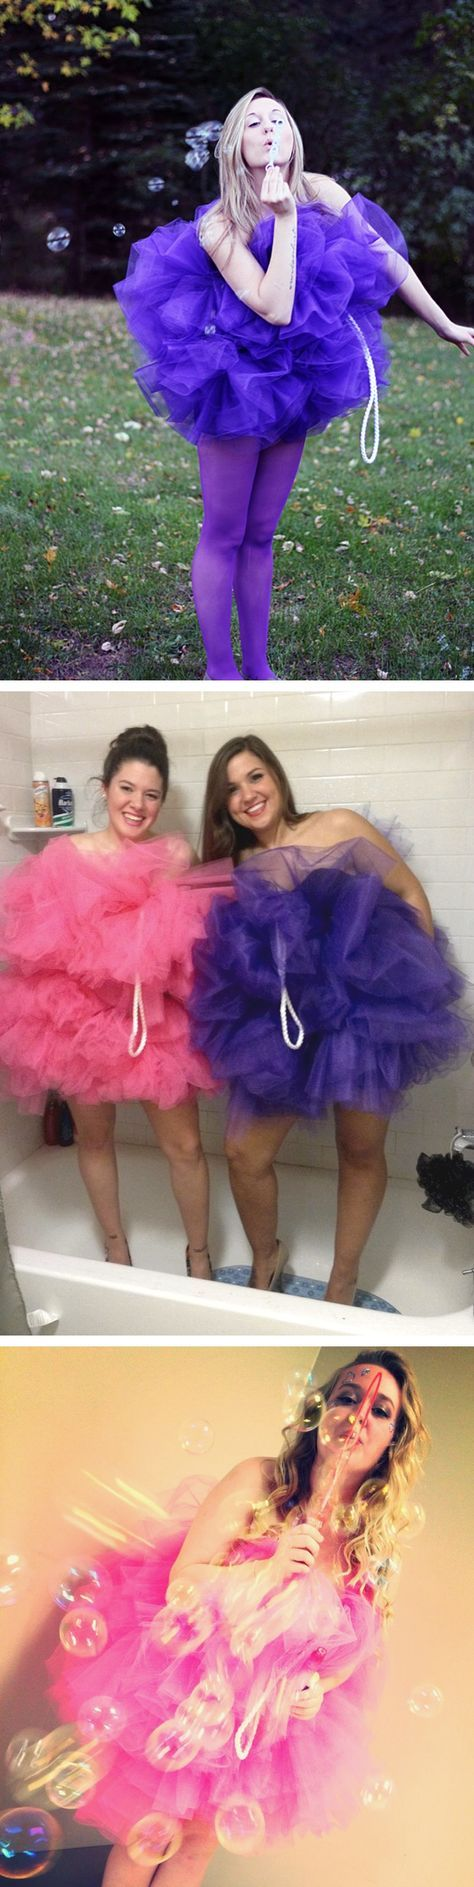 DIY Shower Loofah / Pouf Costumes! Blow bubbles for the